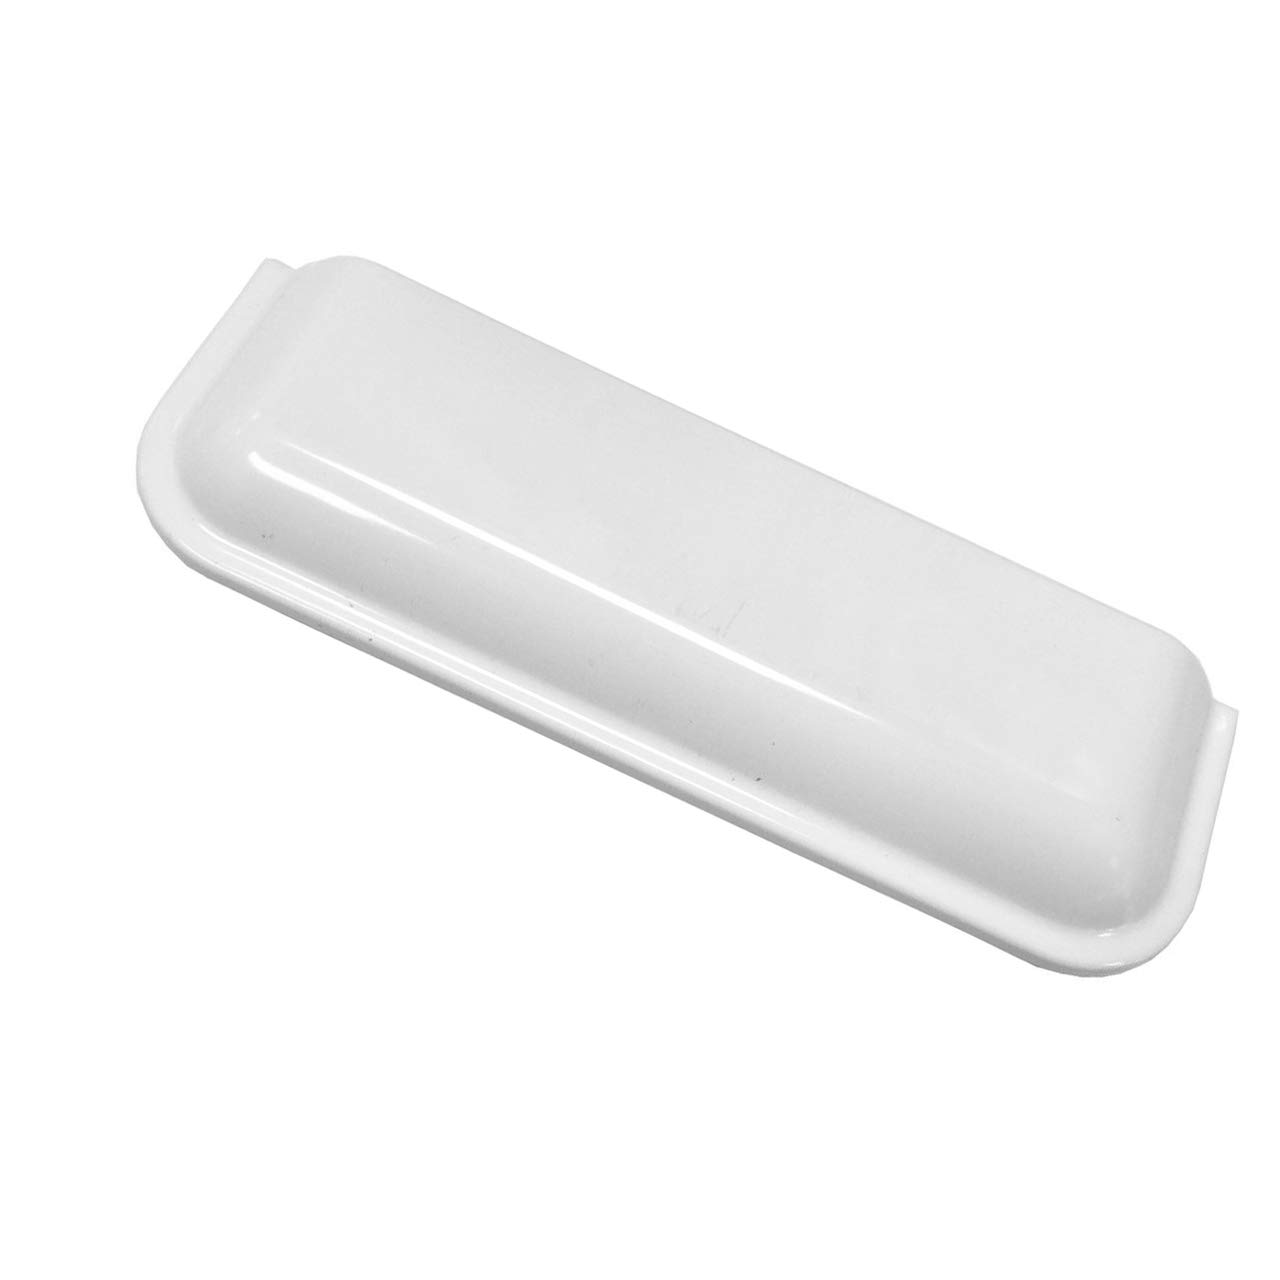 W10714516 Dryer Handle for Whirlpool W10861225 AP5999398,PS11731583,Door Handle for Kenmore, Amana,Maytag